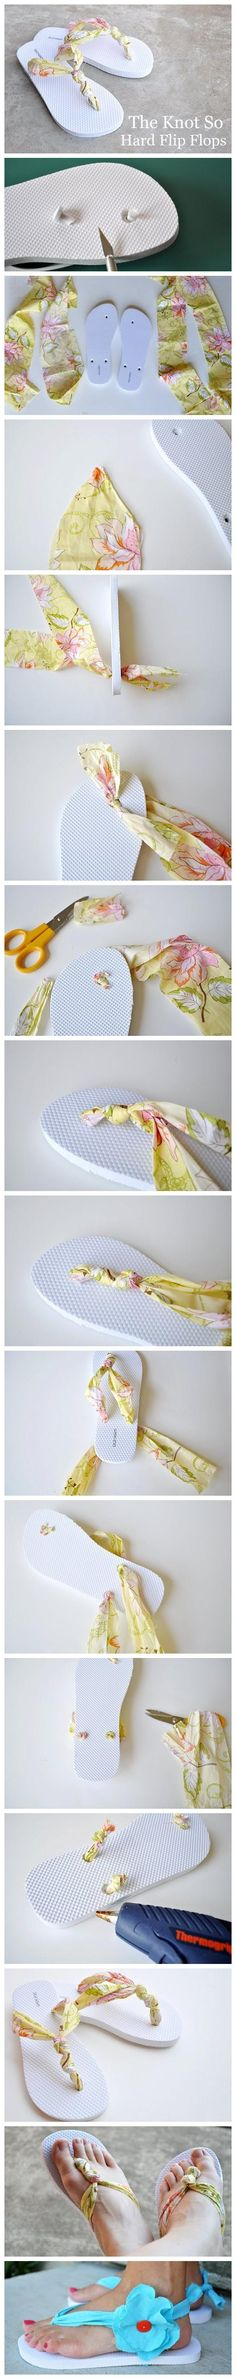 DIY Flip Flops - So ready for summer